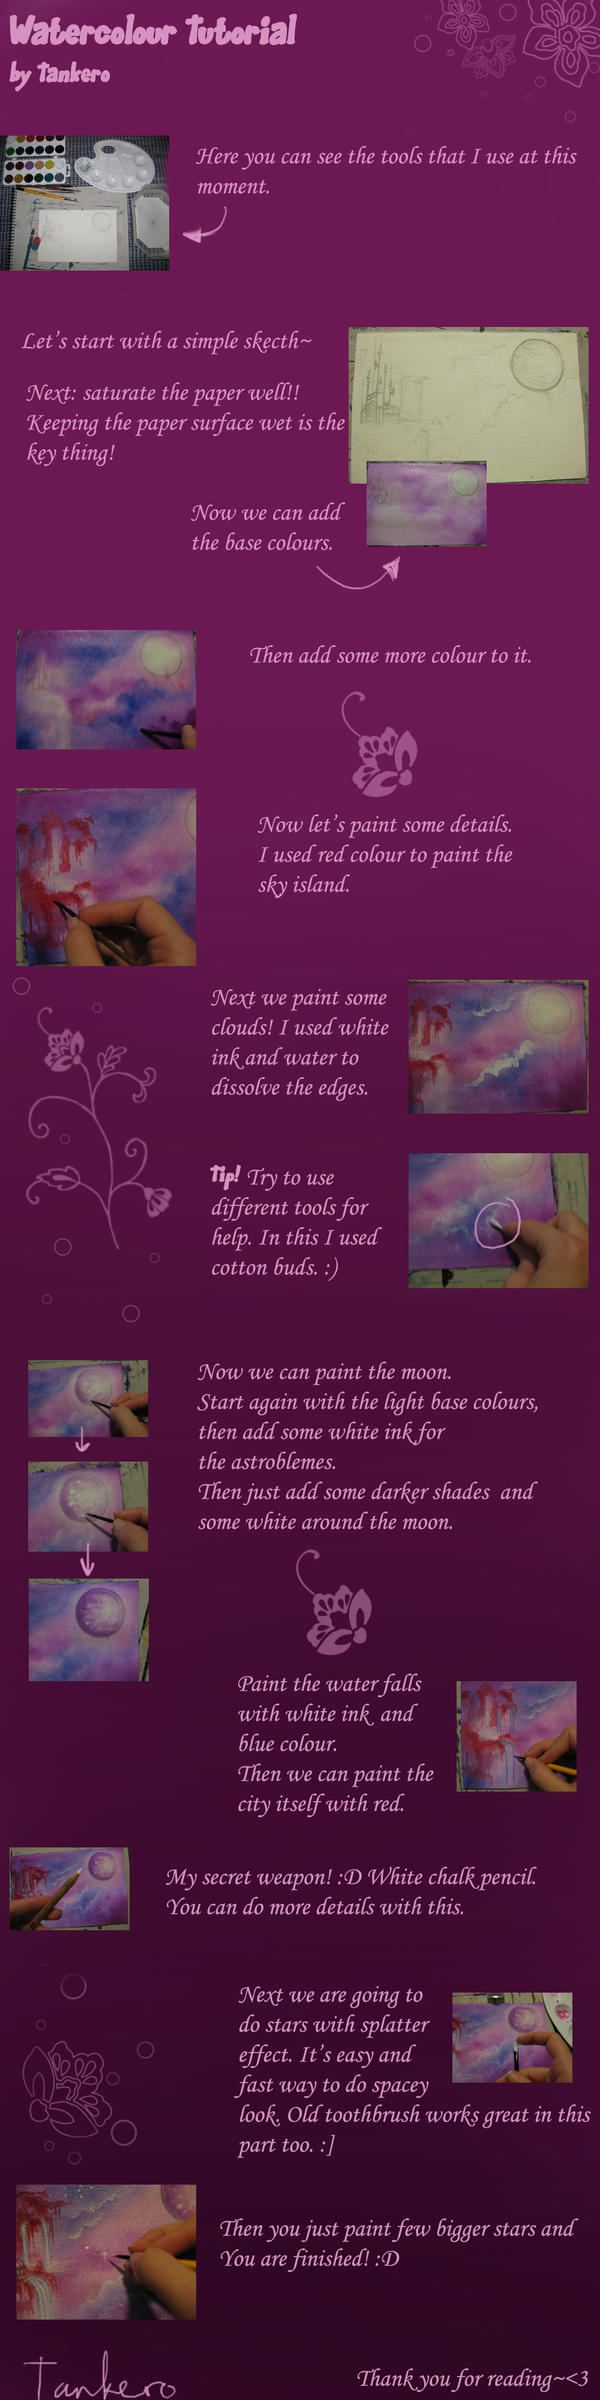 Watercolour Tutorial by Tankero